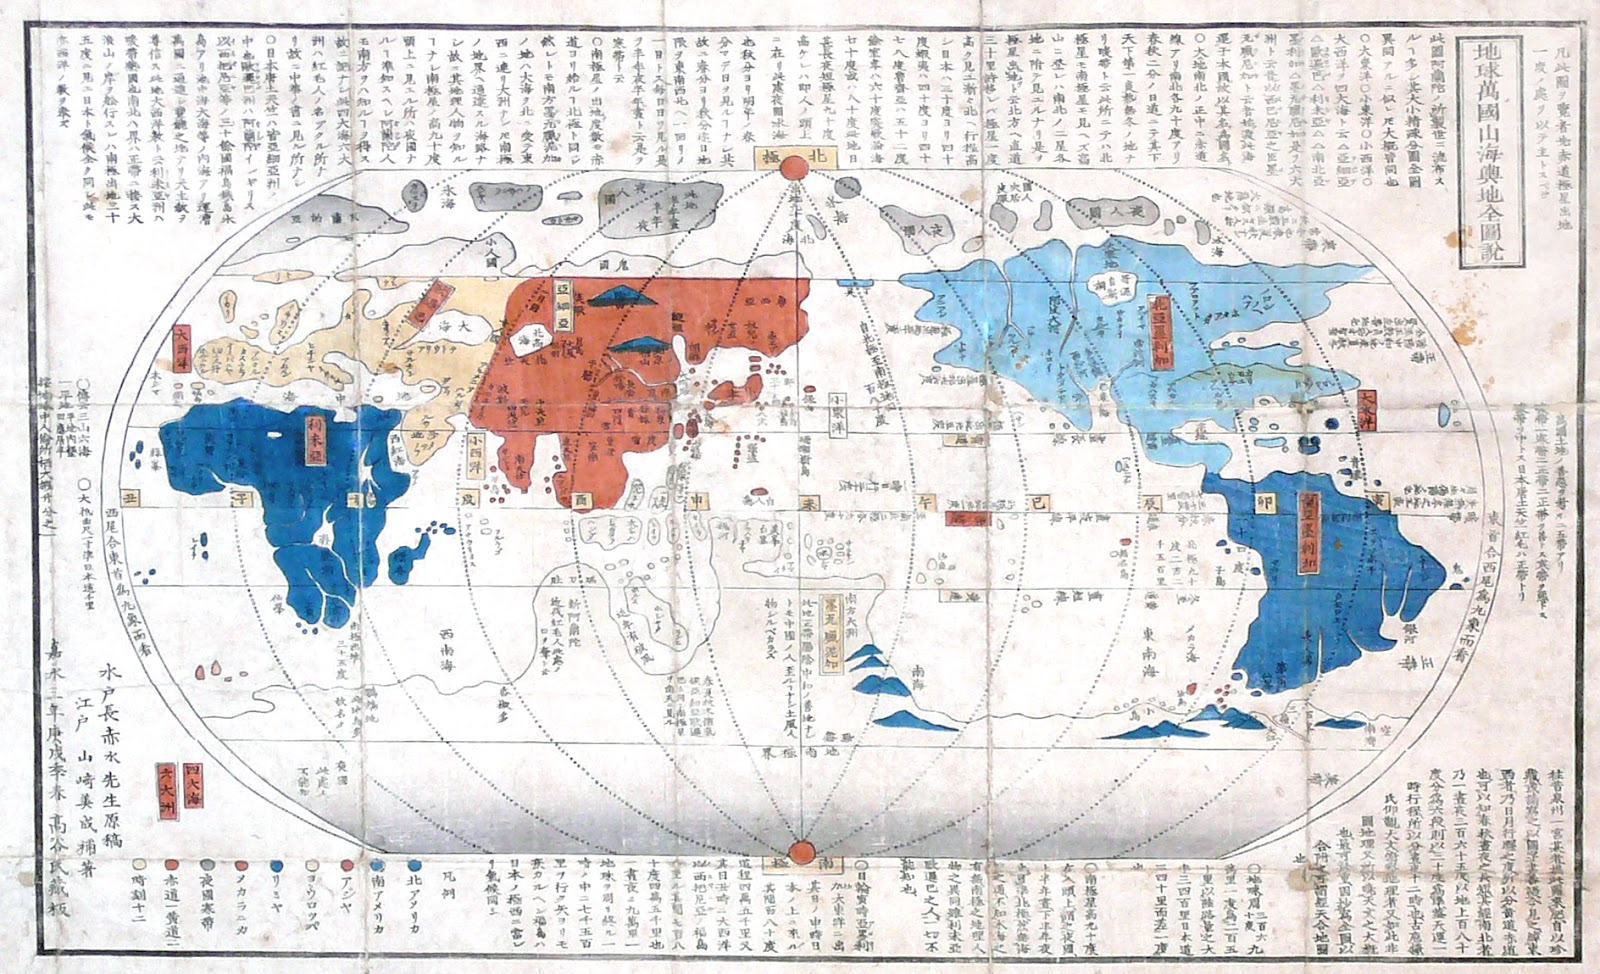 Arader galleries the end of the edo period growing curiosity in japan this map completed in 1850 is a prime example of the increasing interest the japanese were developing in the west this world map displays a fusion of the gumiabroncs Images